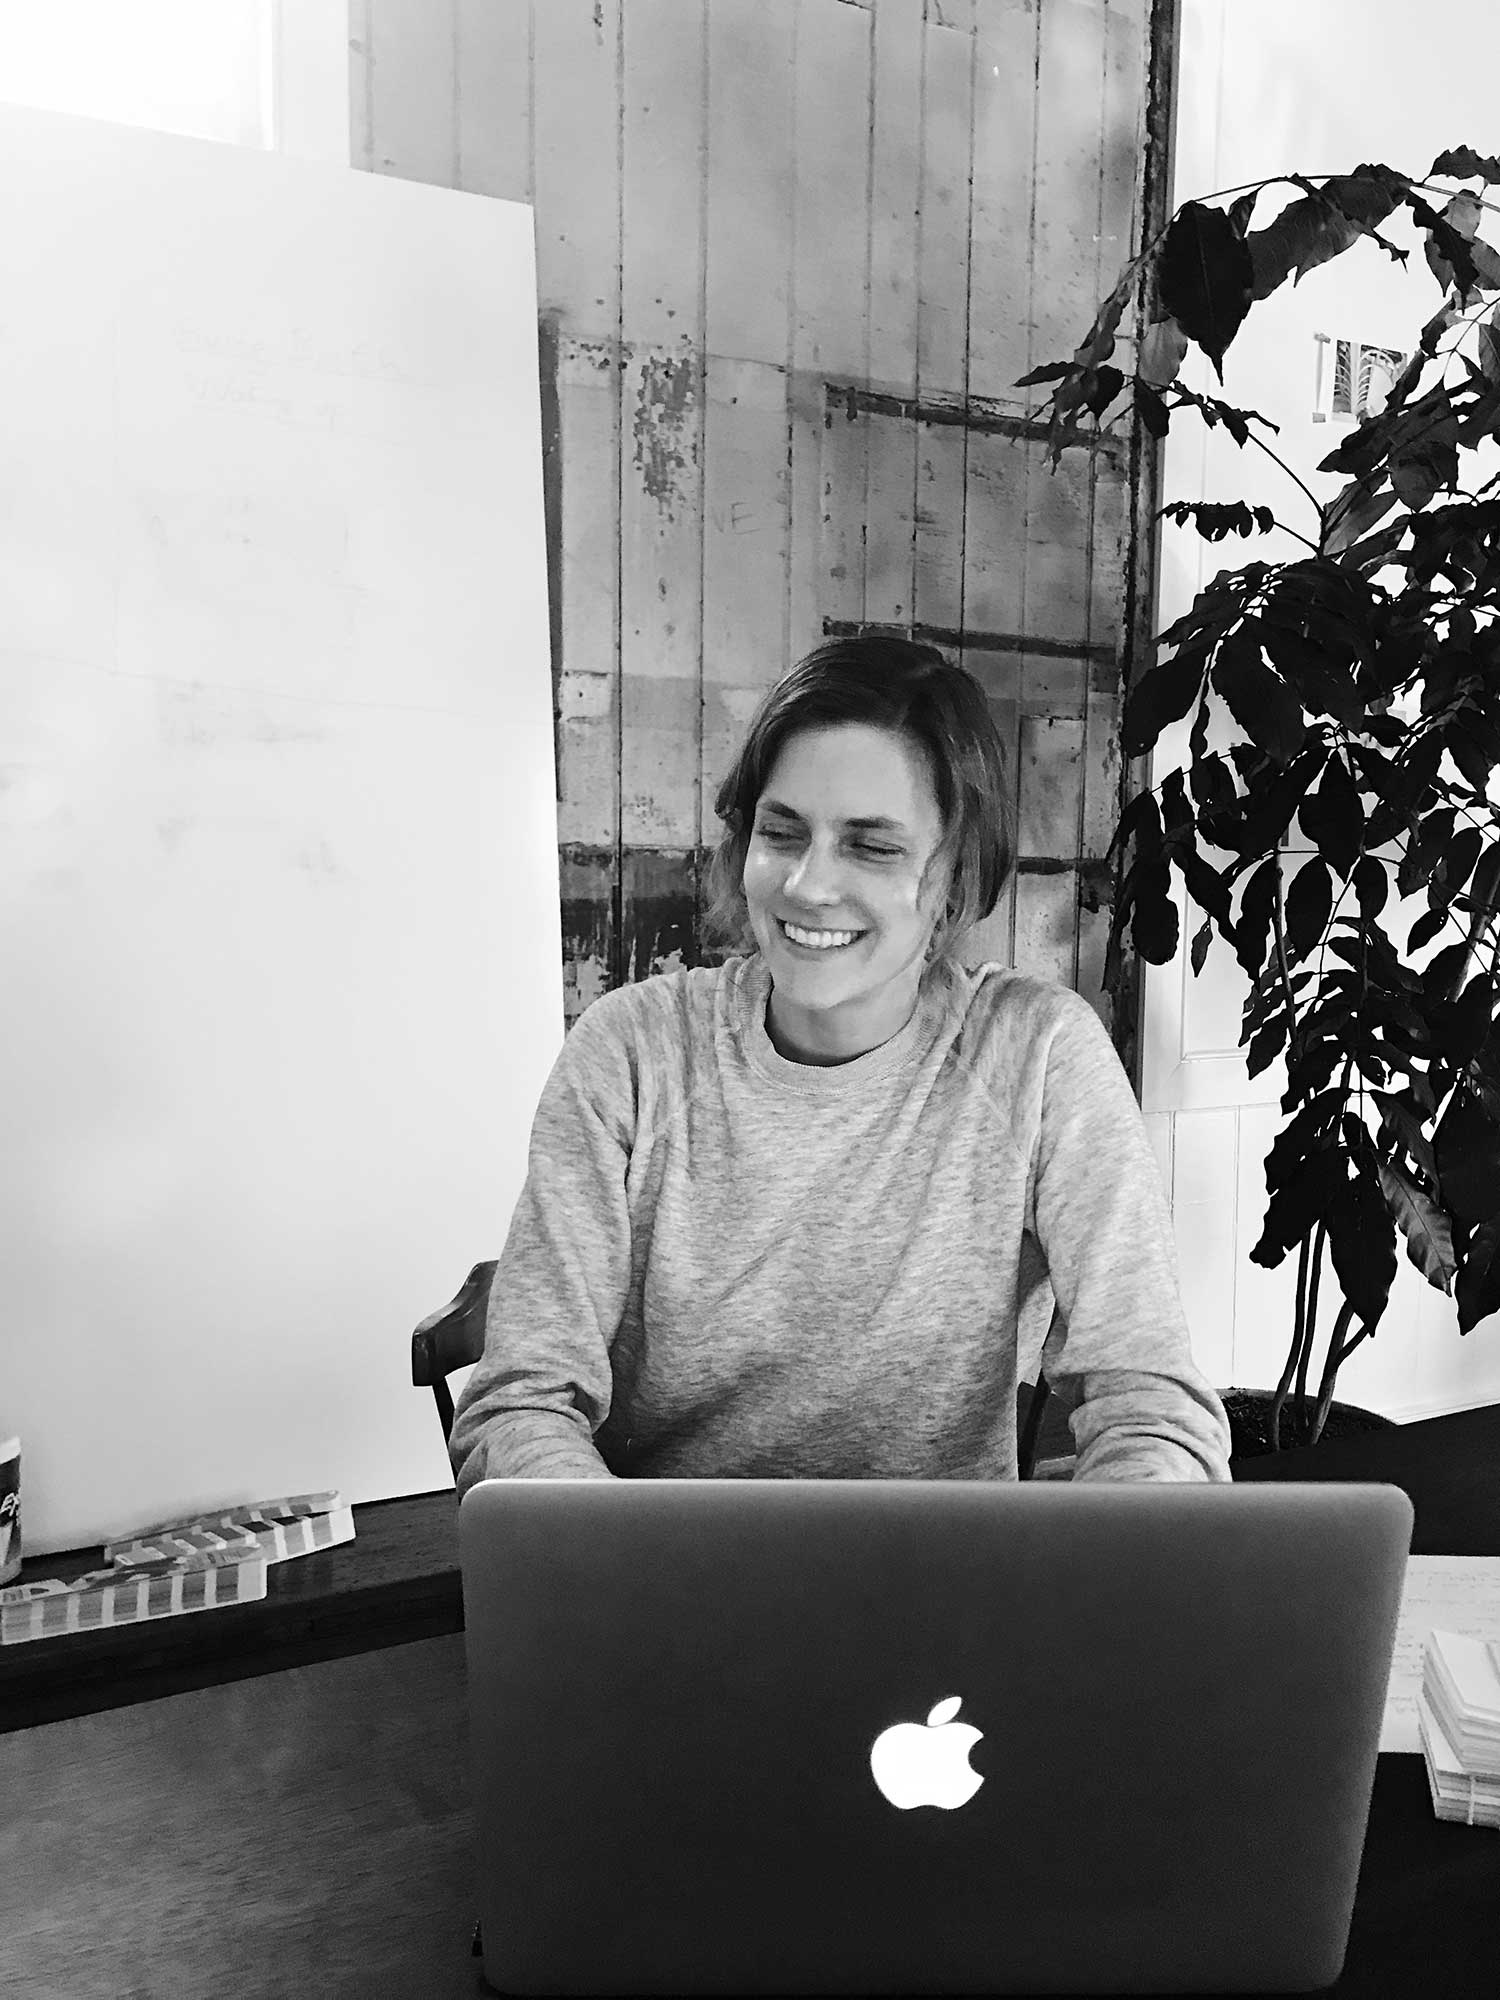 MEET HELEN RICE - The co-founder and creative director of full-service agency Fuzzco offers a glimpse inside her curiosity-driven company—from sunup to sundown.